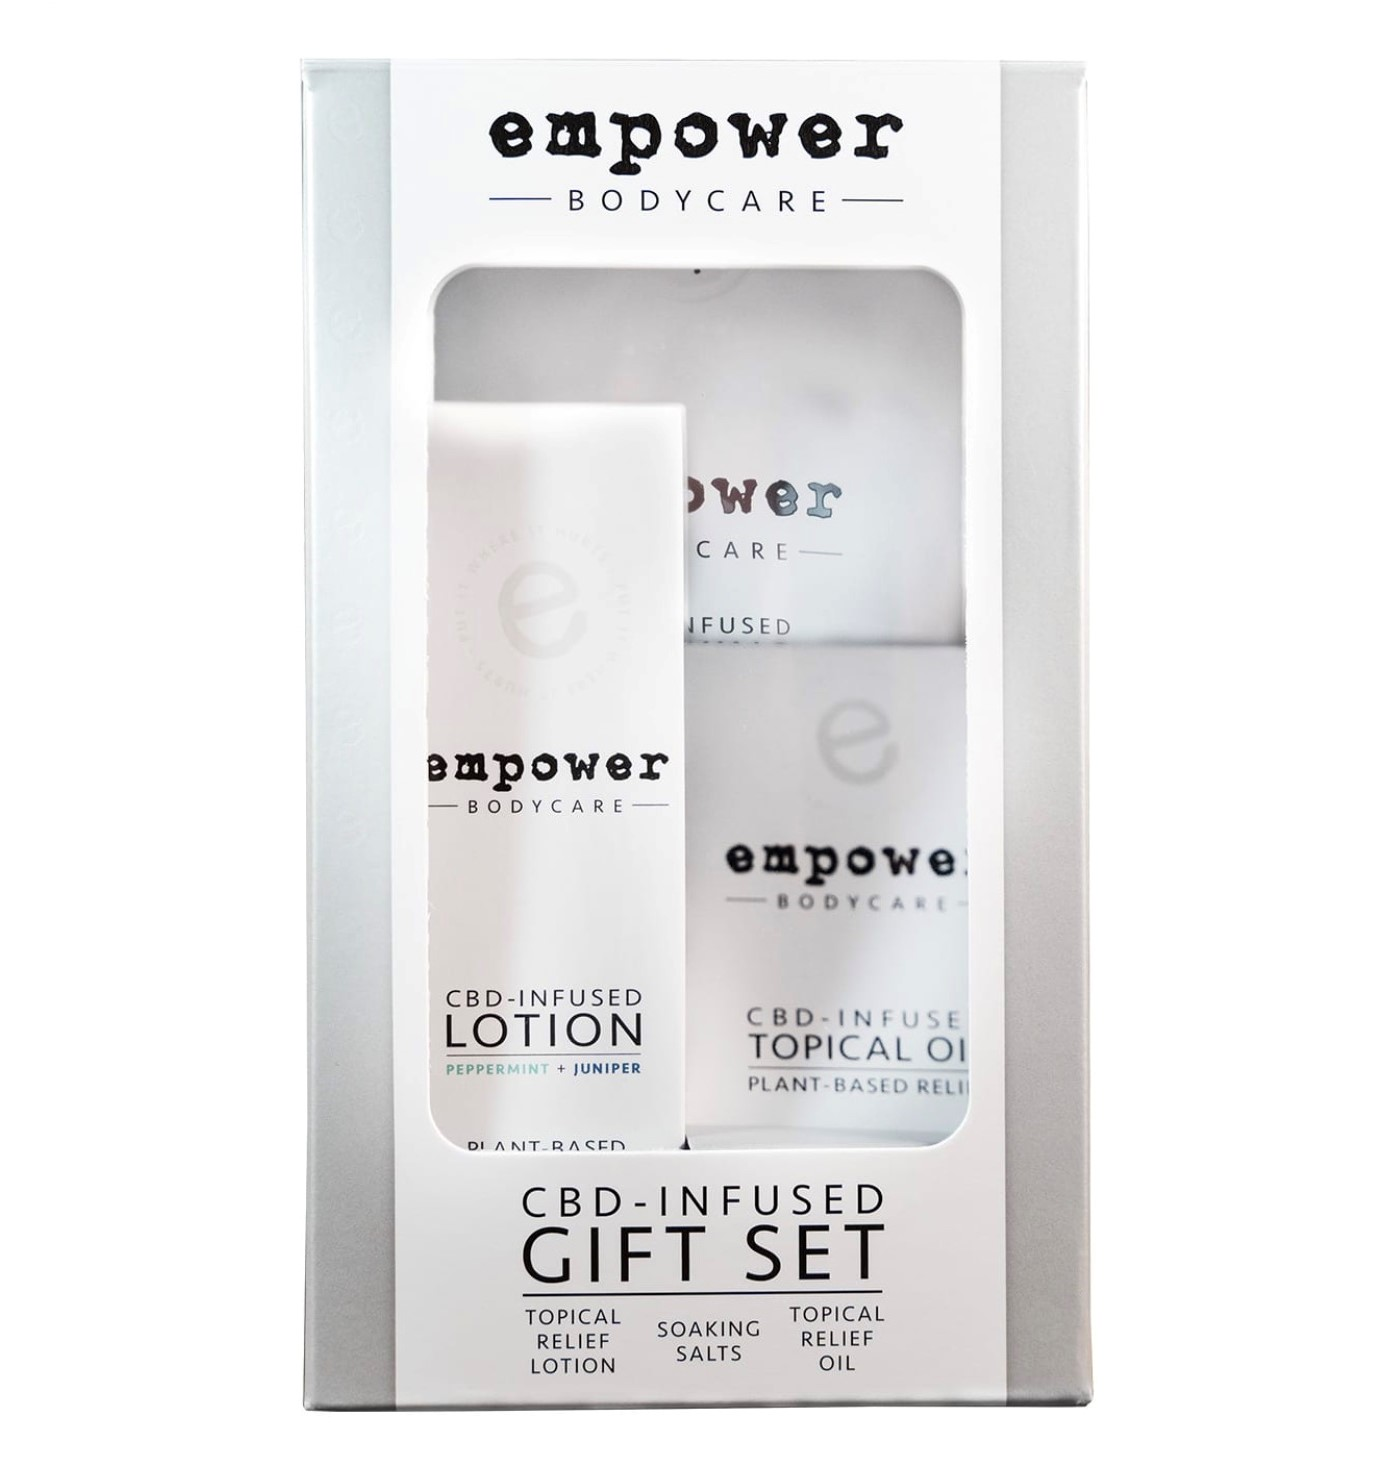 Empower Bodycare CBD-Infused Gift Set